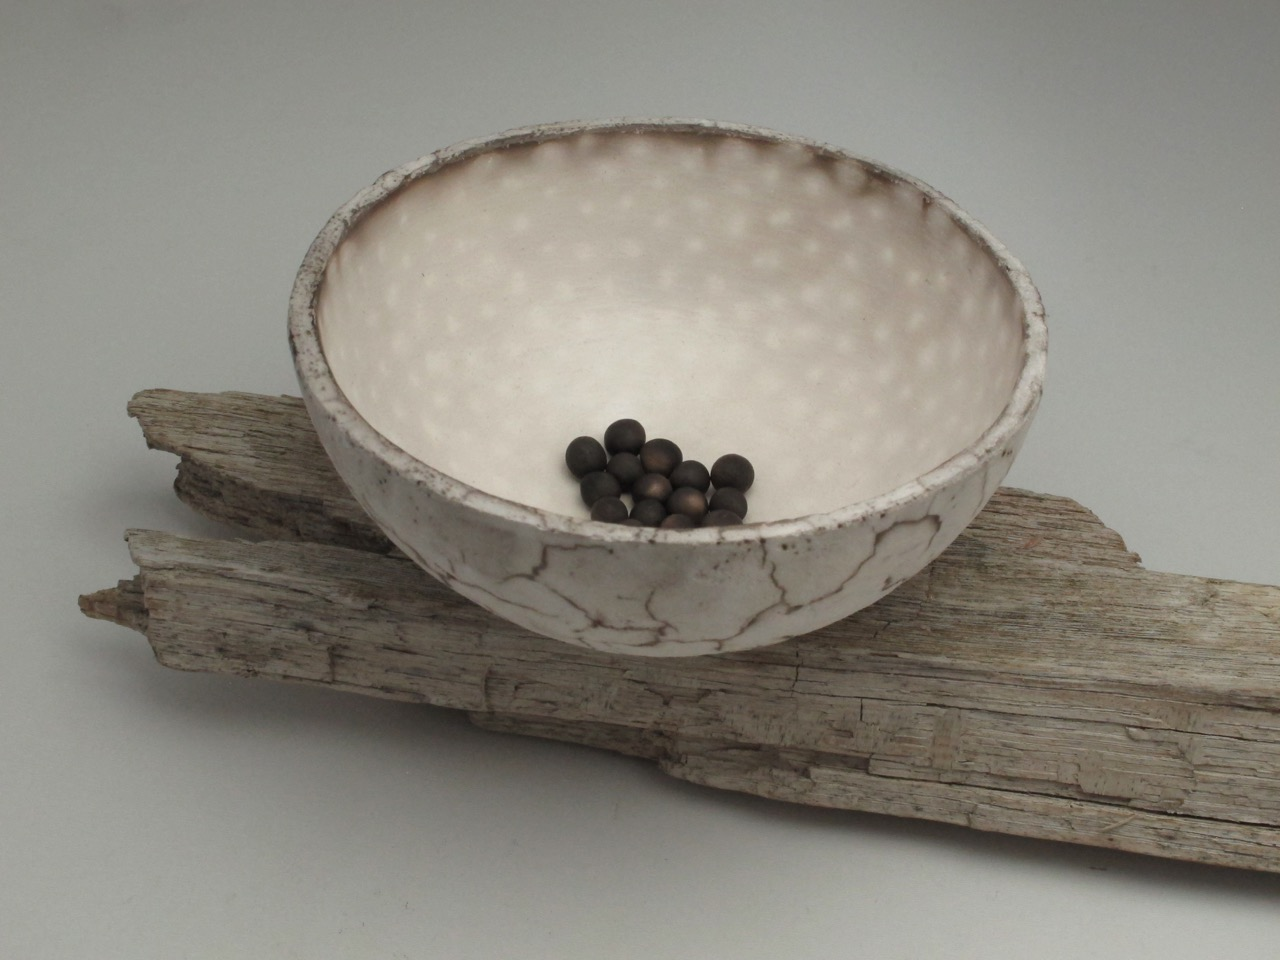 Large Speckled Vessel and Small Seeds on Driftwood